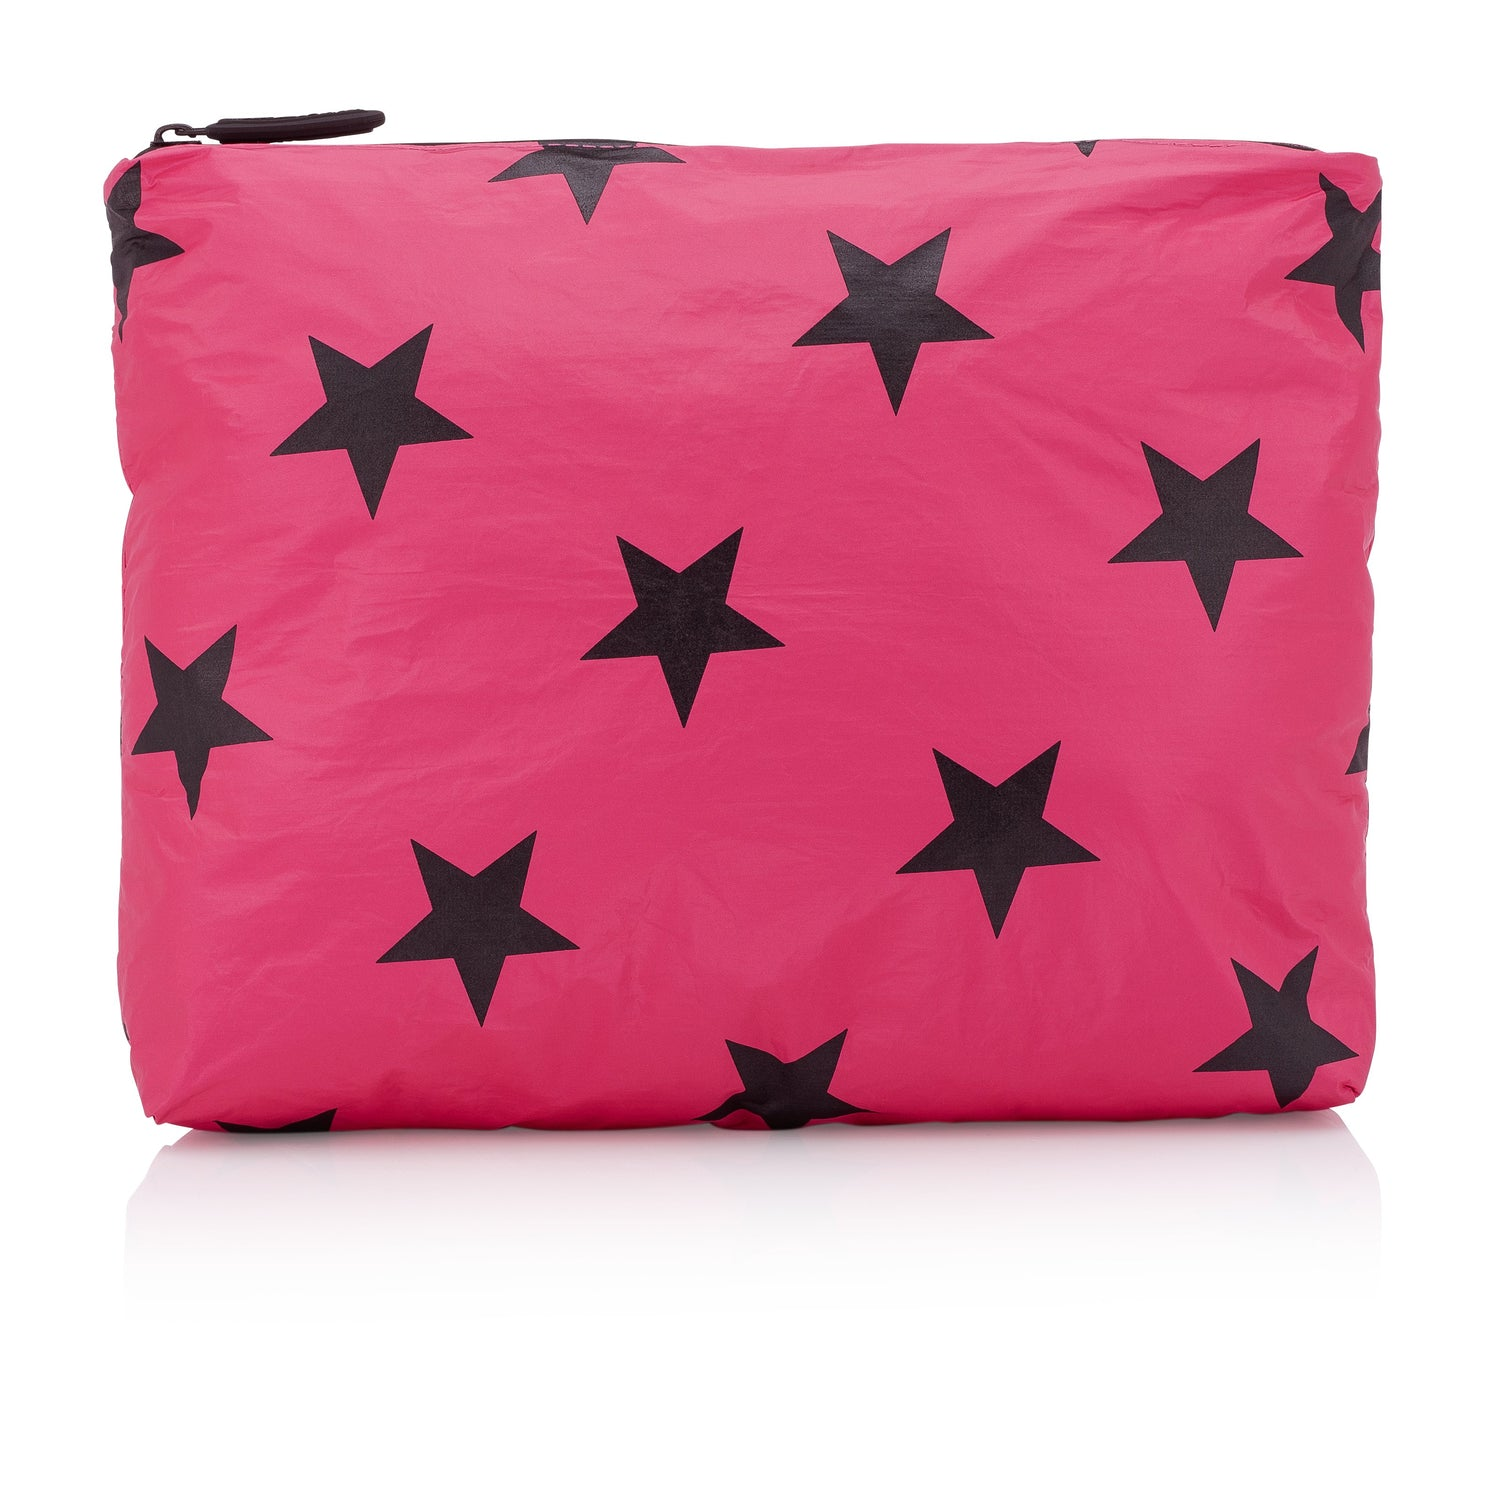 Medium Pack - Pink Peacock with Black Stars